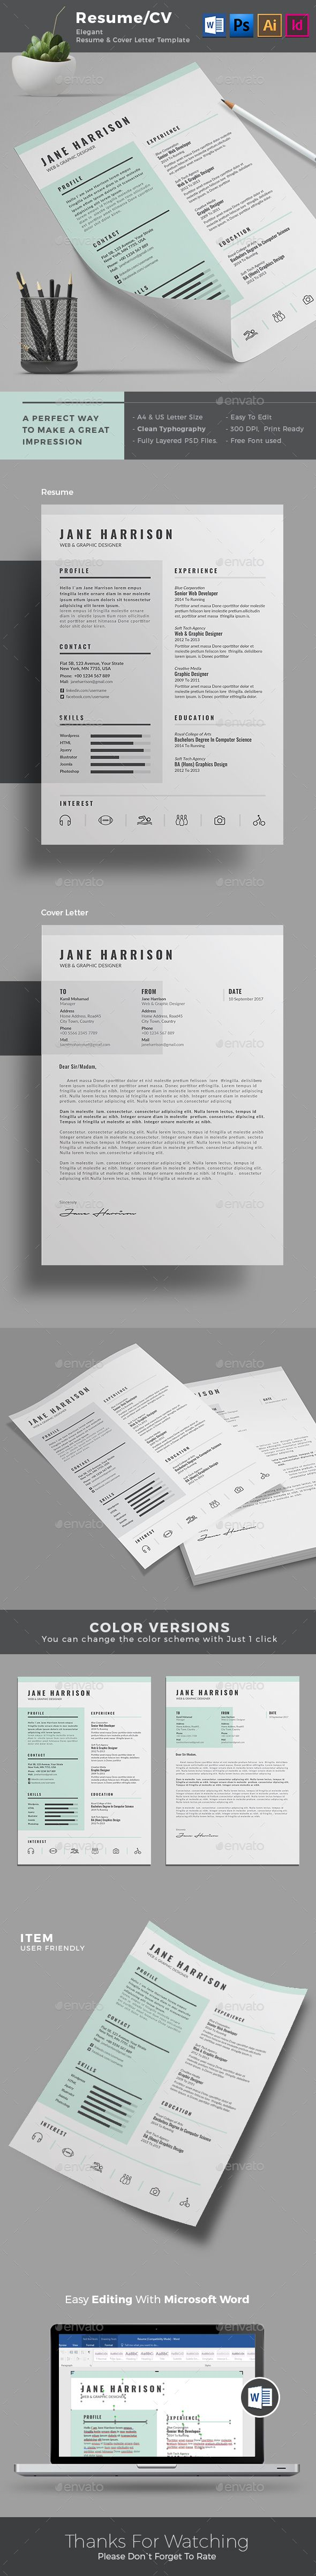 Minimal Resume Template Design | A4 & US Letter Size | Indesign + ...